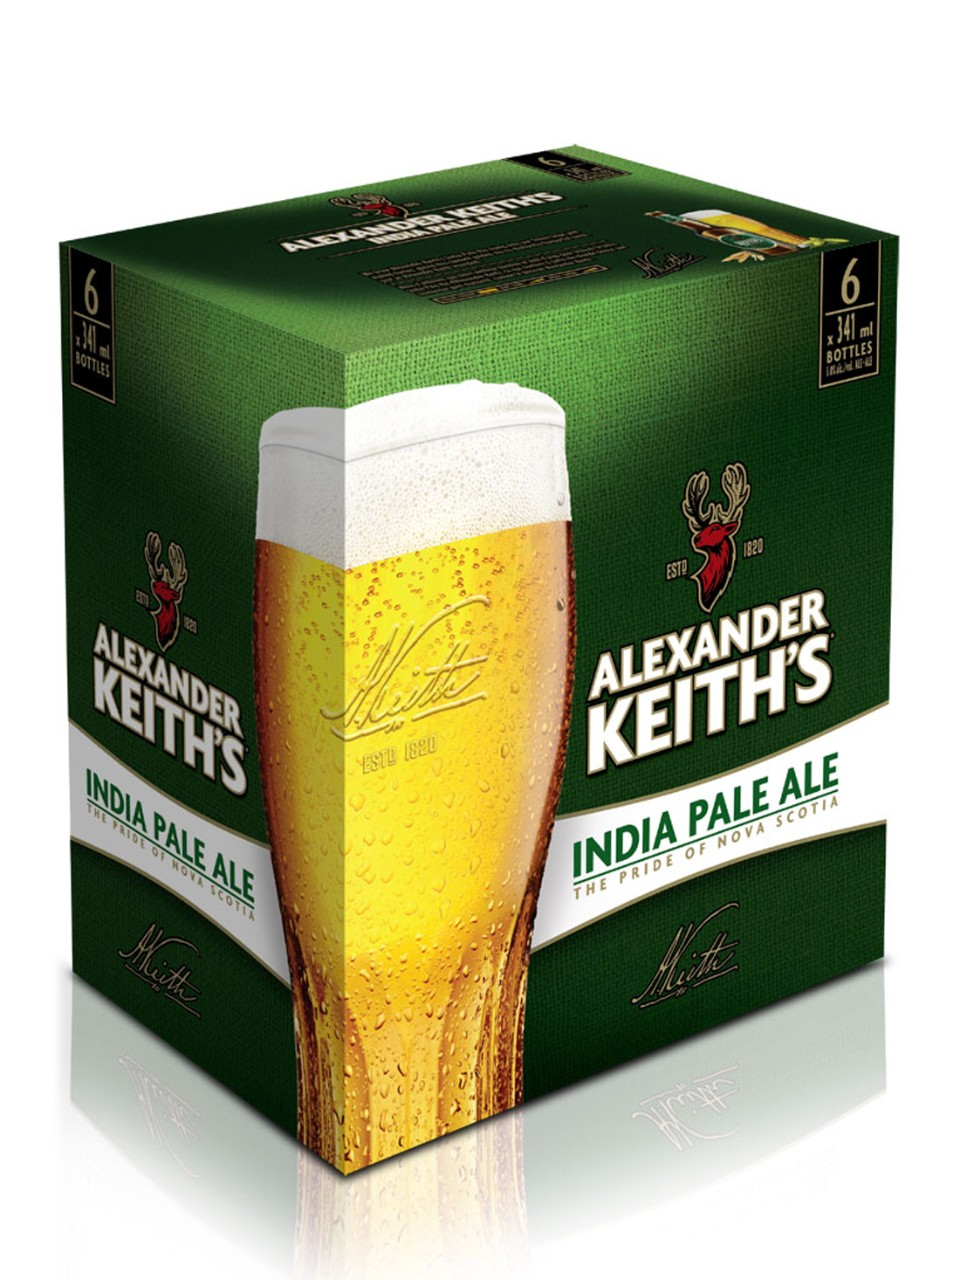 Alexander Keith's India Pale Ale                                                                                                -A